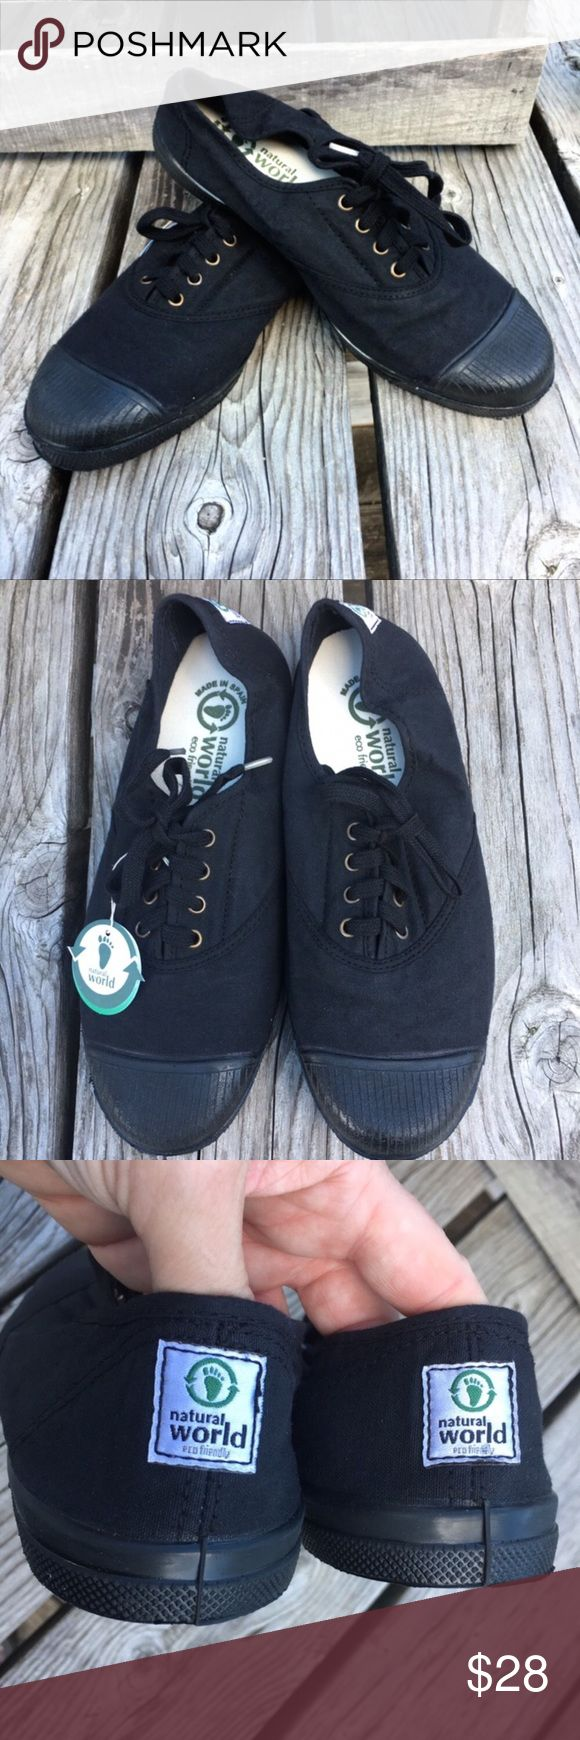 🆕List! Natural World Black Organic Sneakers! NEW! Made from 100% organic cotton! Platform height is 0.75 inches. Size is EUR 39 - please know your EUR size before purchasing as Poshmark's translation is inaccurate imo. I measured the inside sole to try to help! Total length of inside sole is 9.75 inches. Inside sole width is 3 and 3/8 inch at widest point. (This is equivalent to a size 8 I have measured in the past!) Outside sole measures approximately 10.25 inches long and 3 and 5/8 at the…